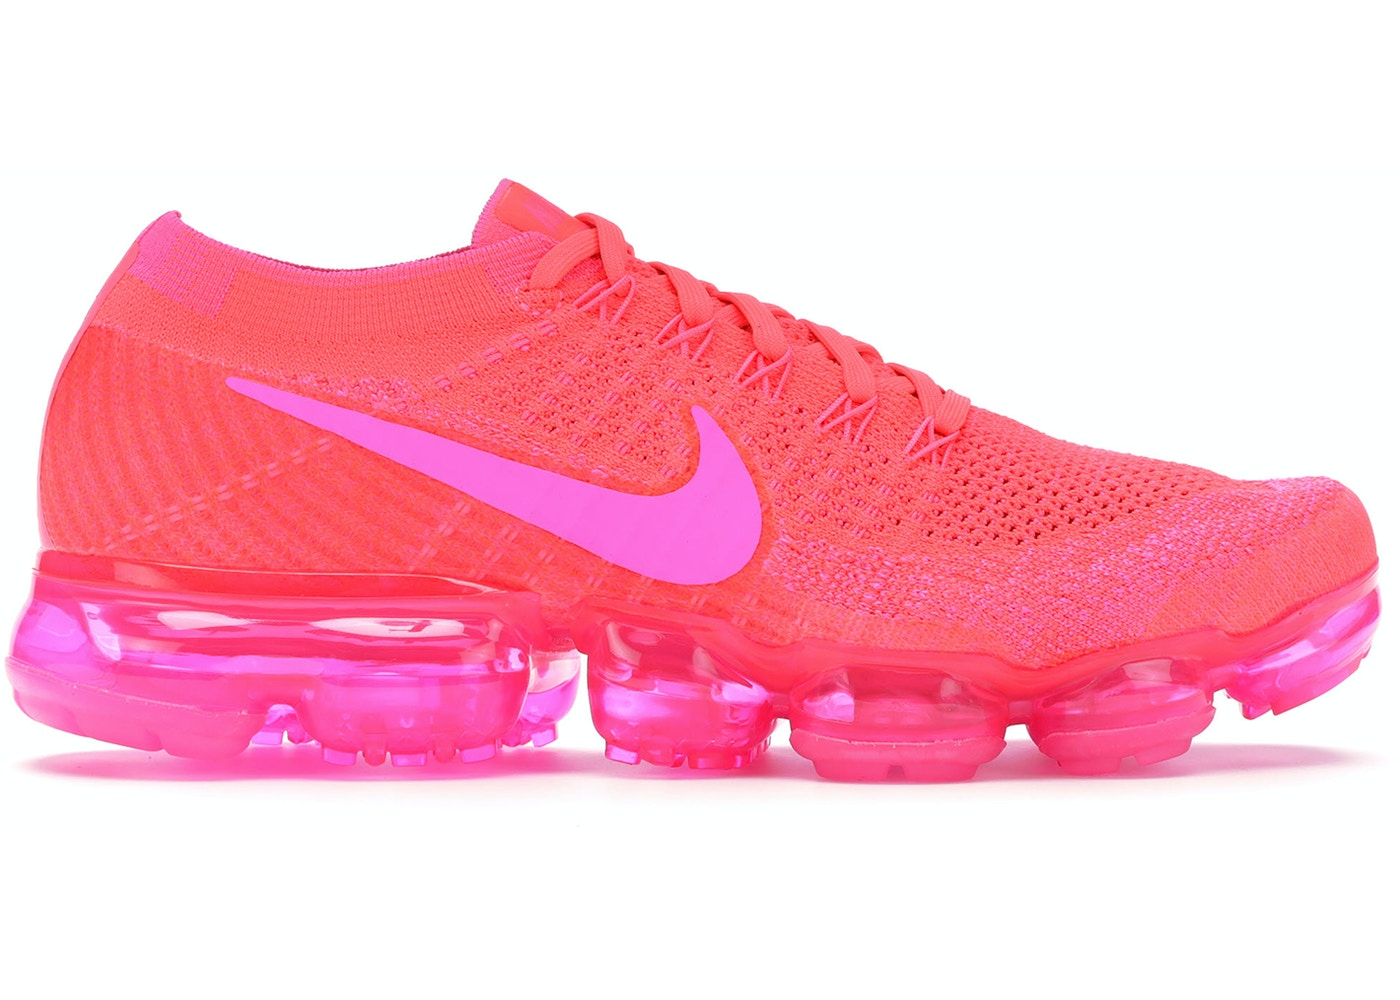 reputable site 042a4 bfdc4 Air VaporMax Hyper Punch (W)